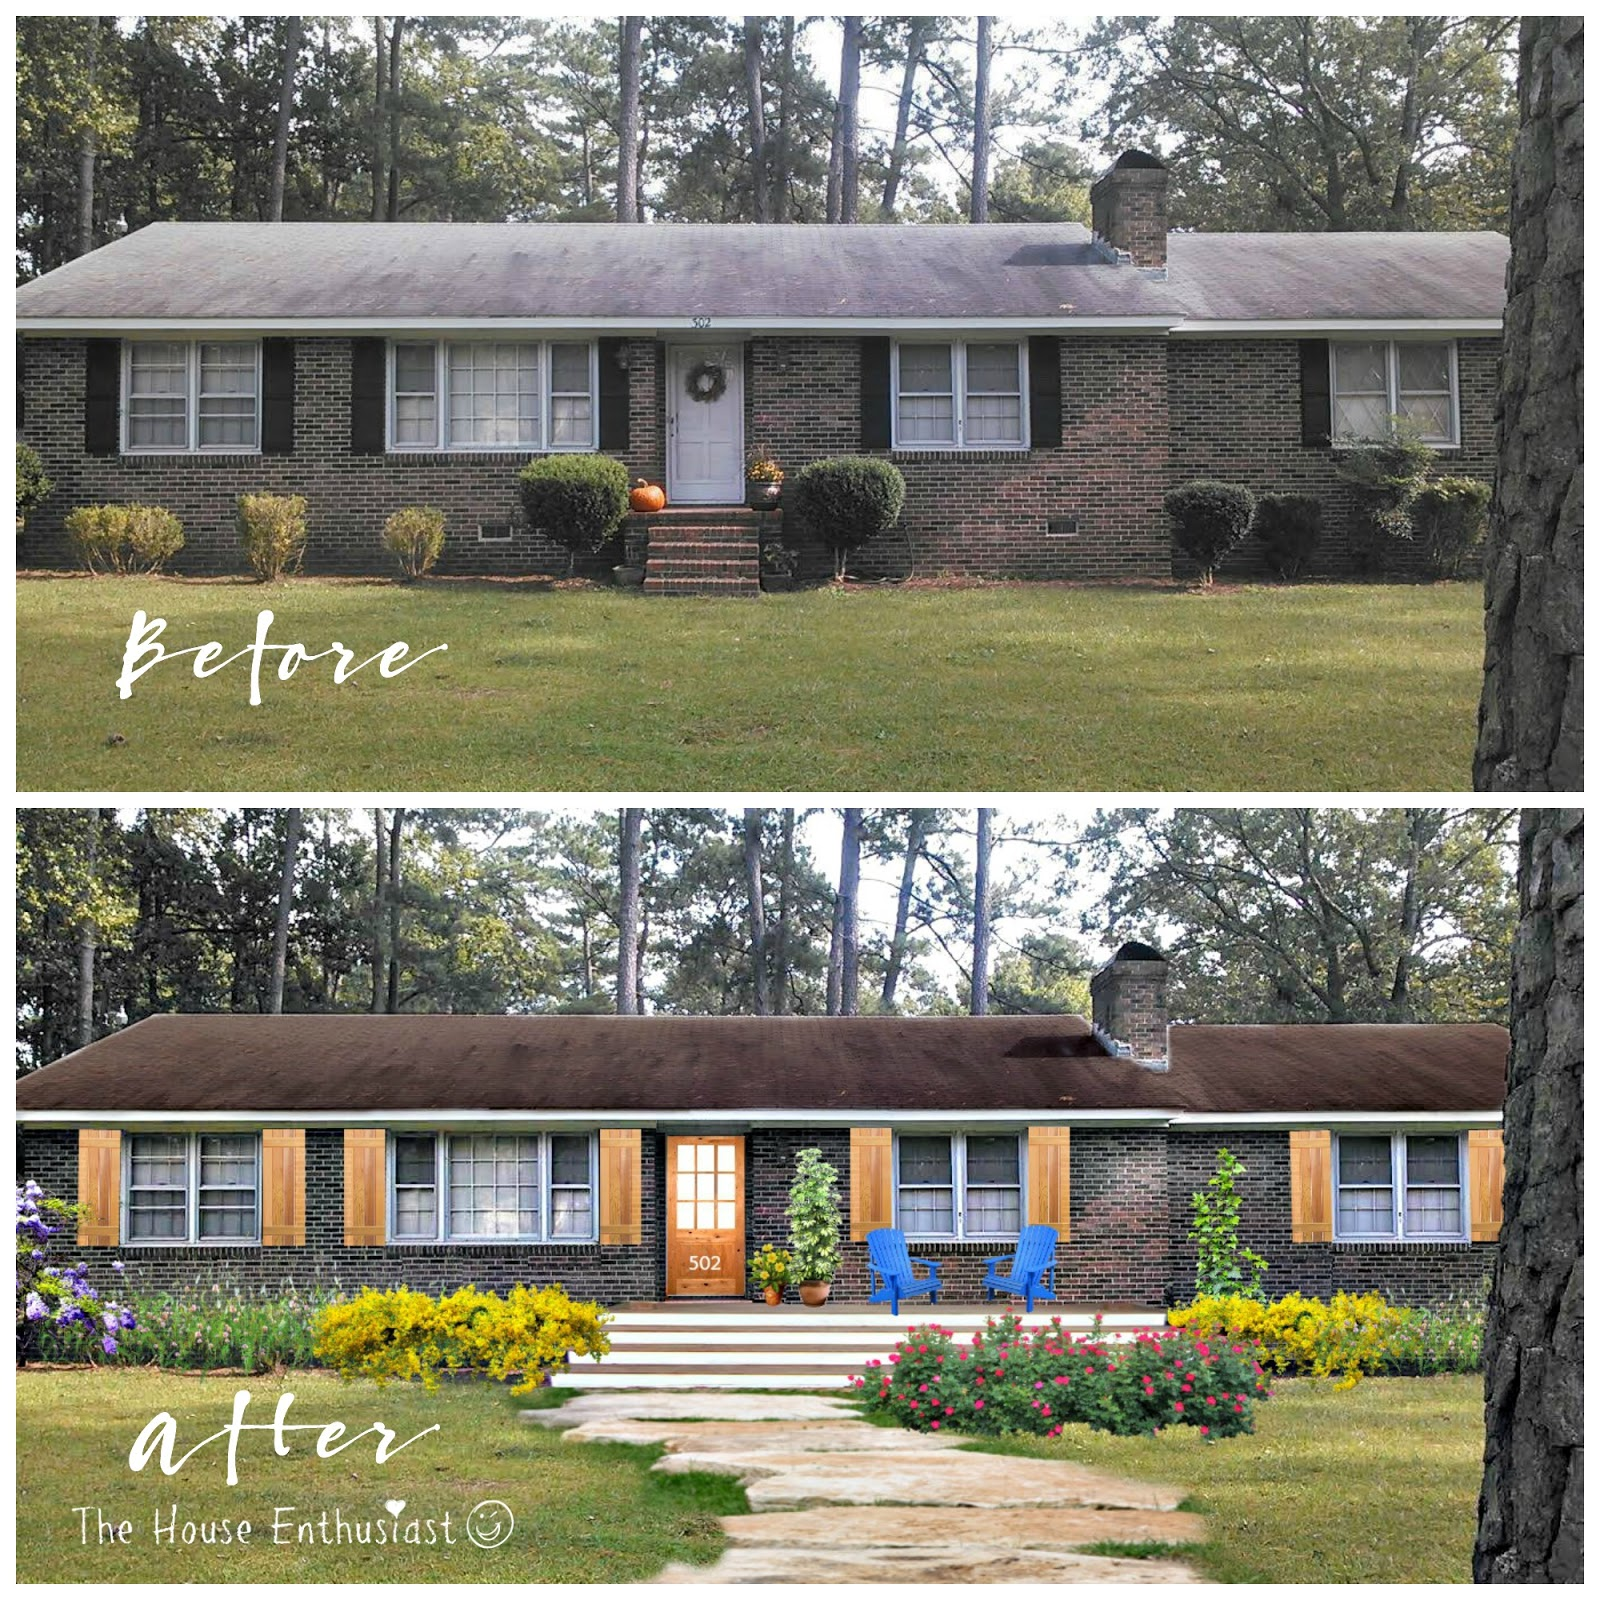 The house enthusiast before and after house makeovers for Before and after exterior home makeovers